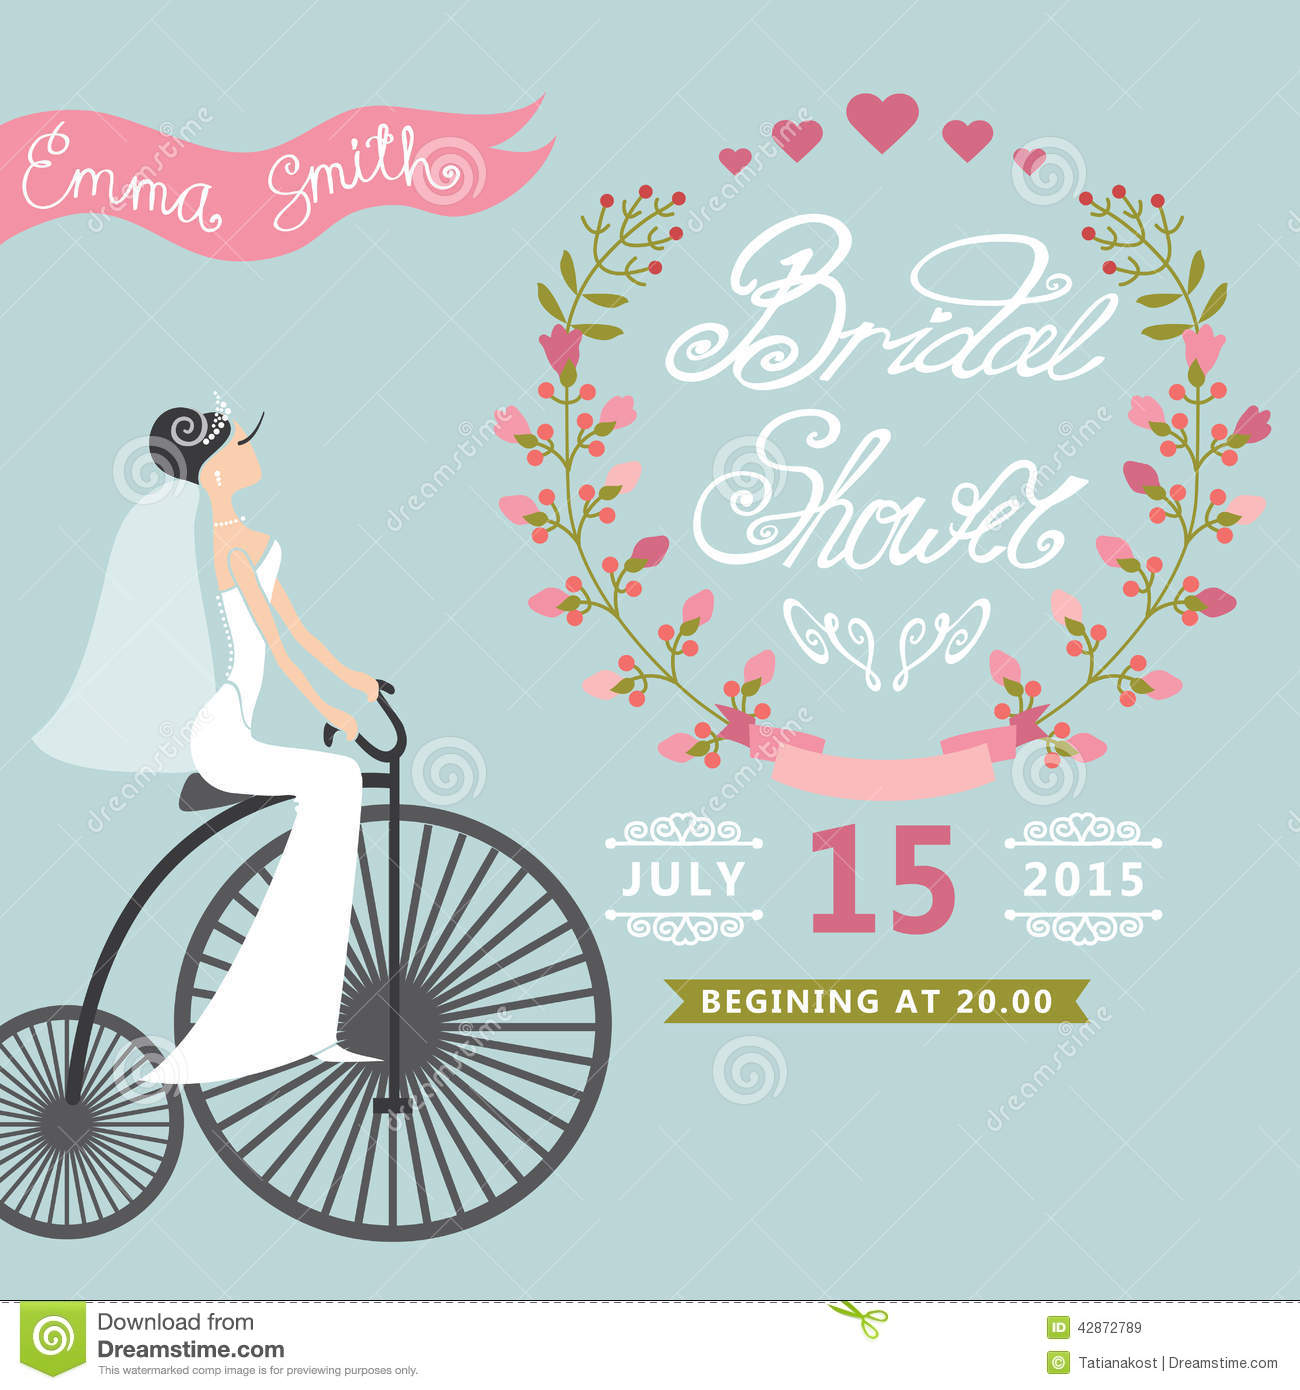 Bridal showerntage wedding invitation with stock image image of bridal shower card with bride on retro bicycle and floral wreathntage wedding invitation vector illustration filmwisefo